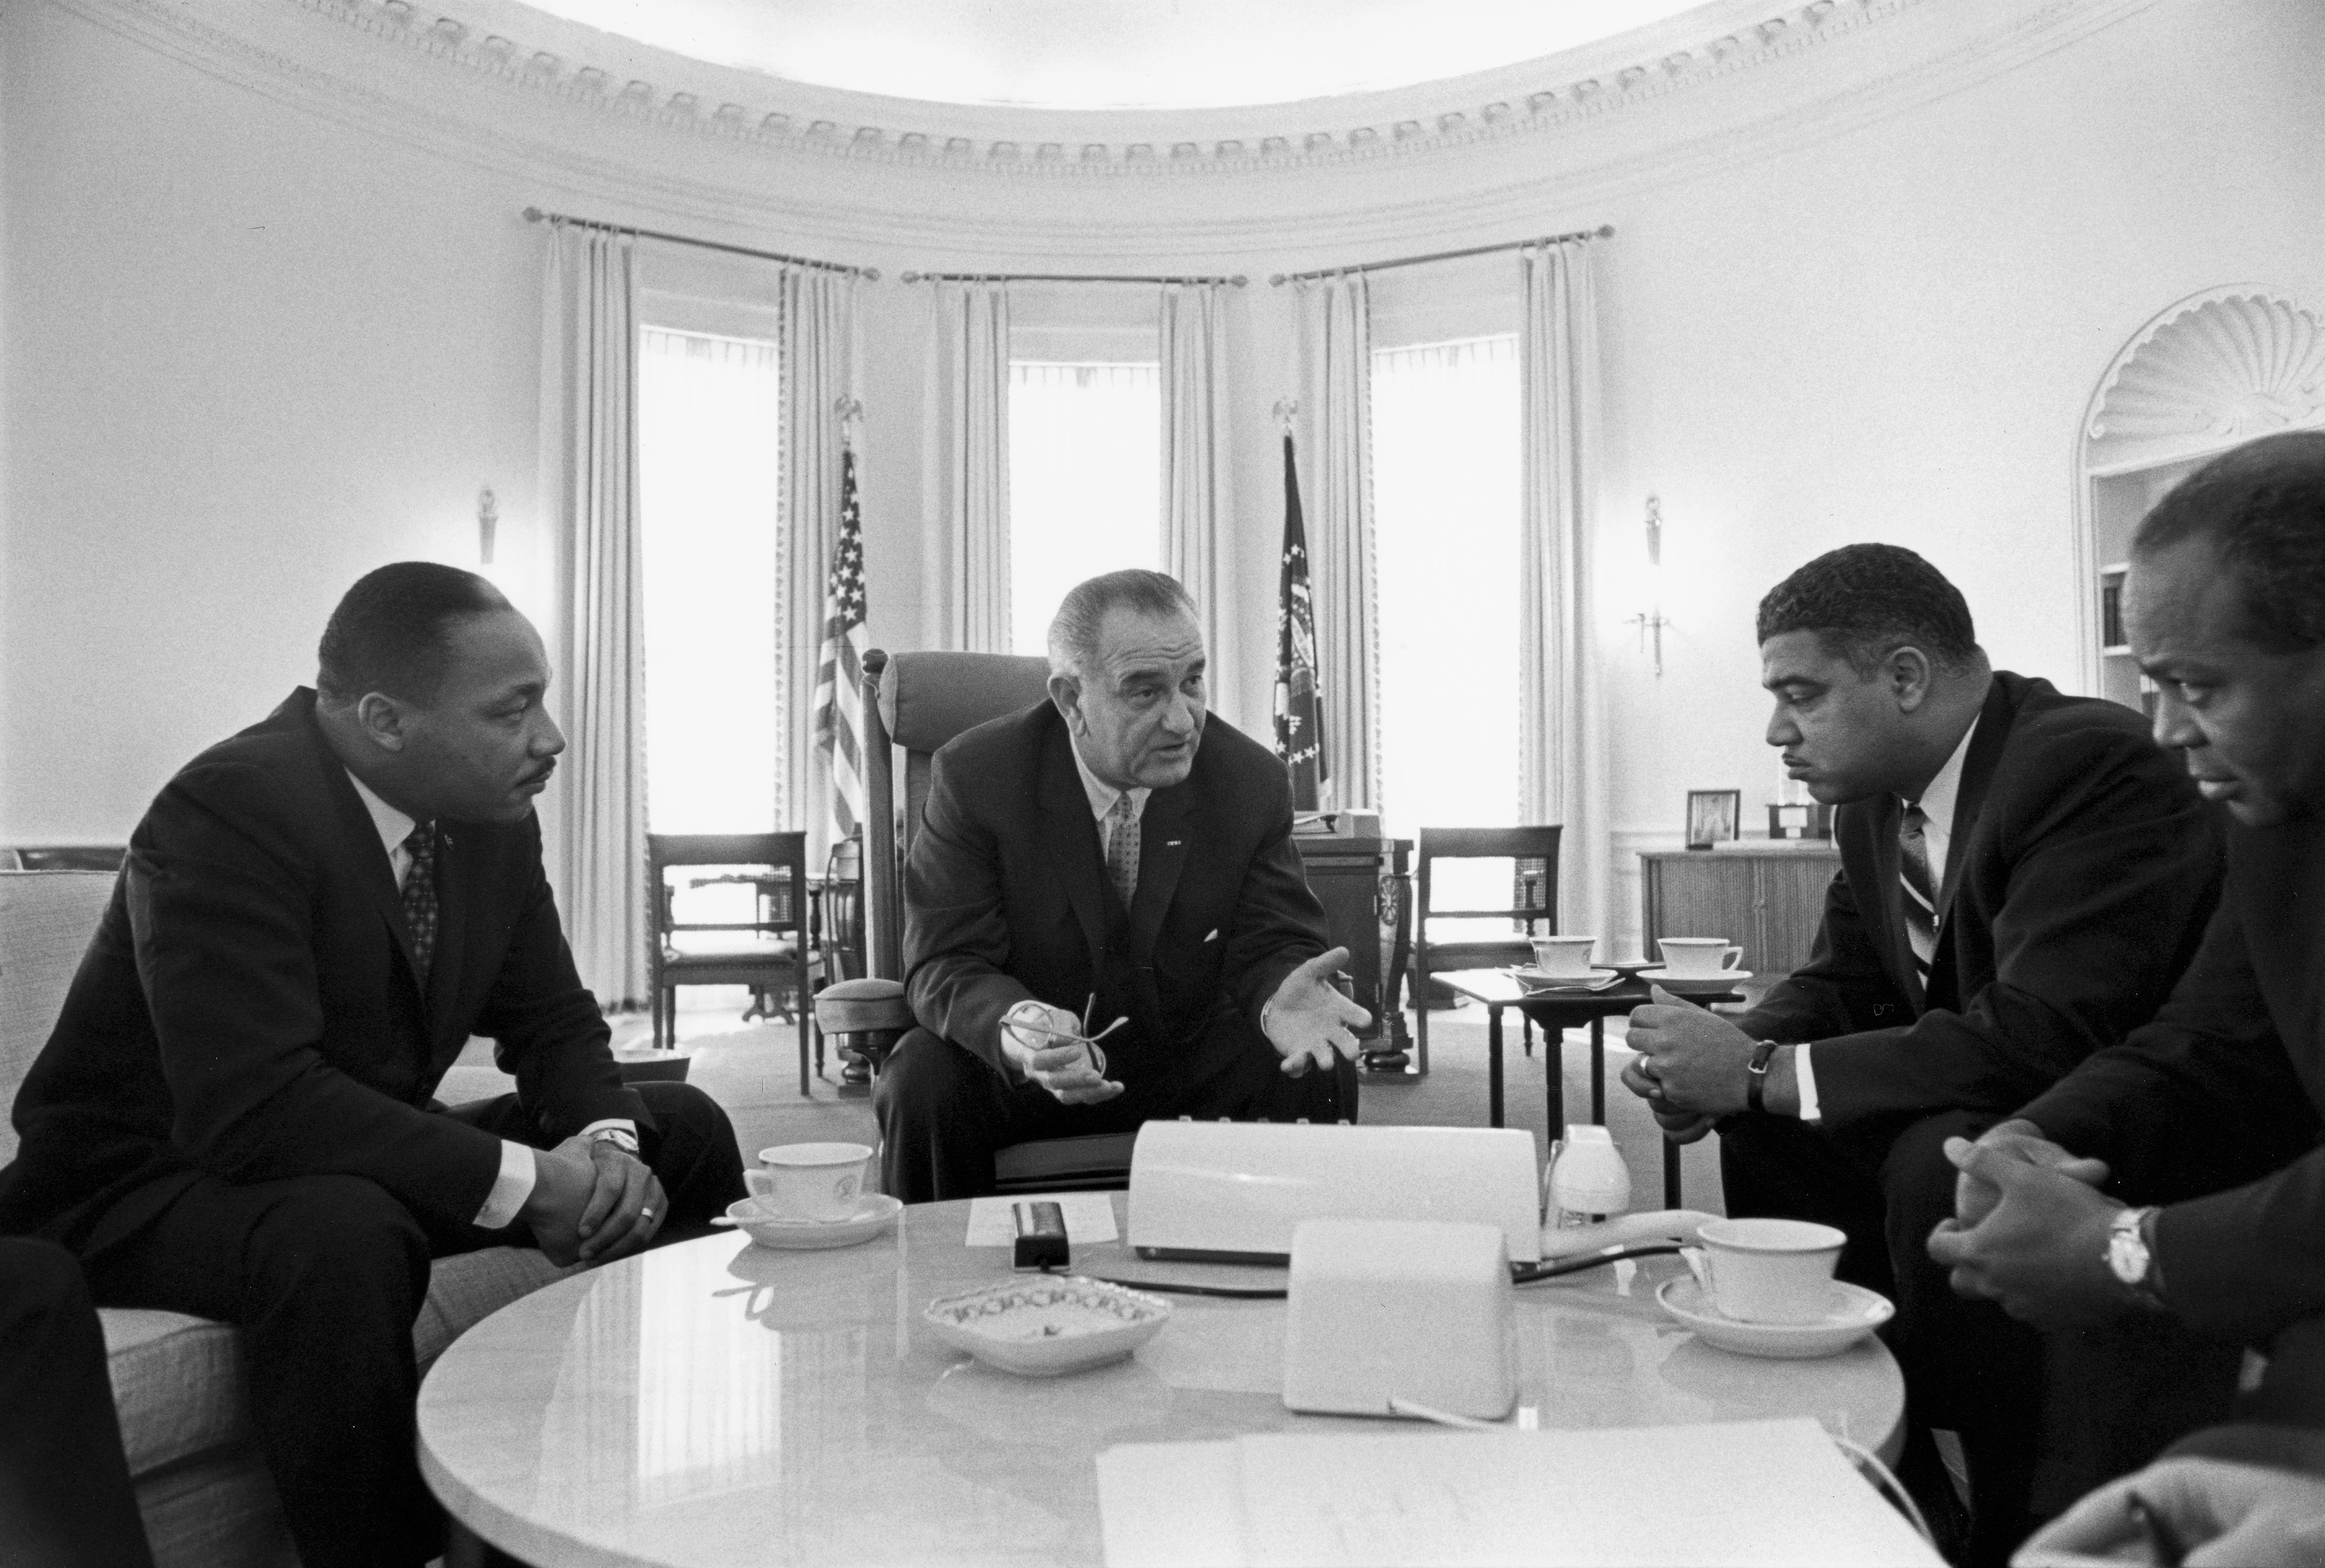 President Lyndon B. Johnson meets with Civil Rights leaders Martin Luther King, Jr., Whitney Young, and James Farmer, January 1964.